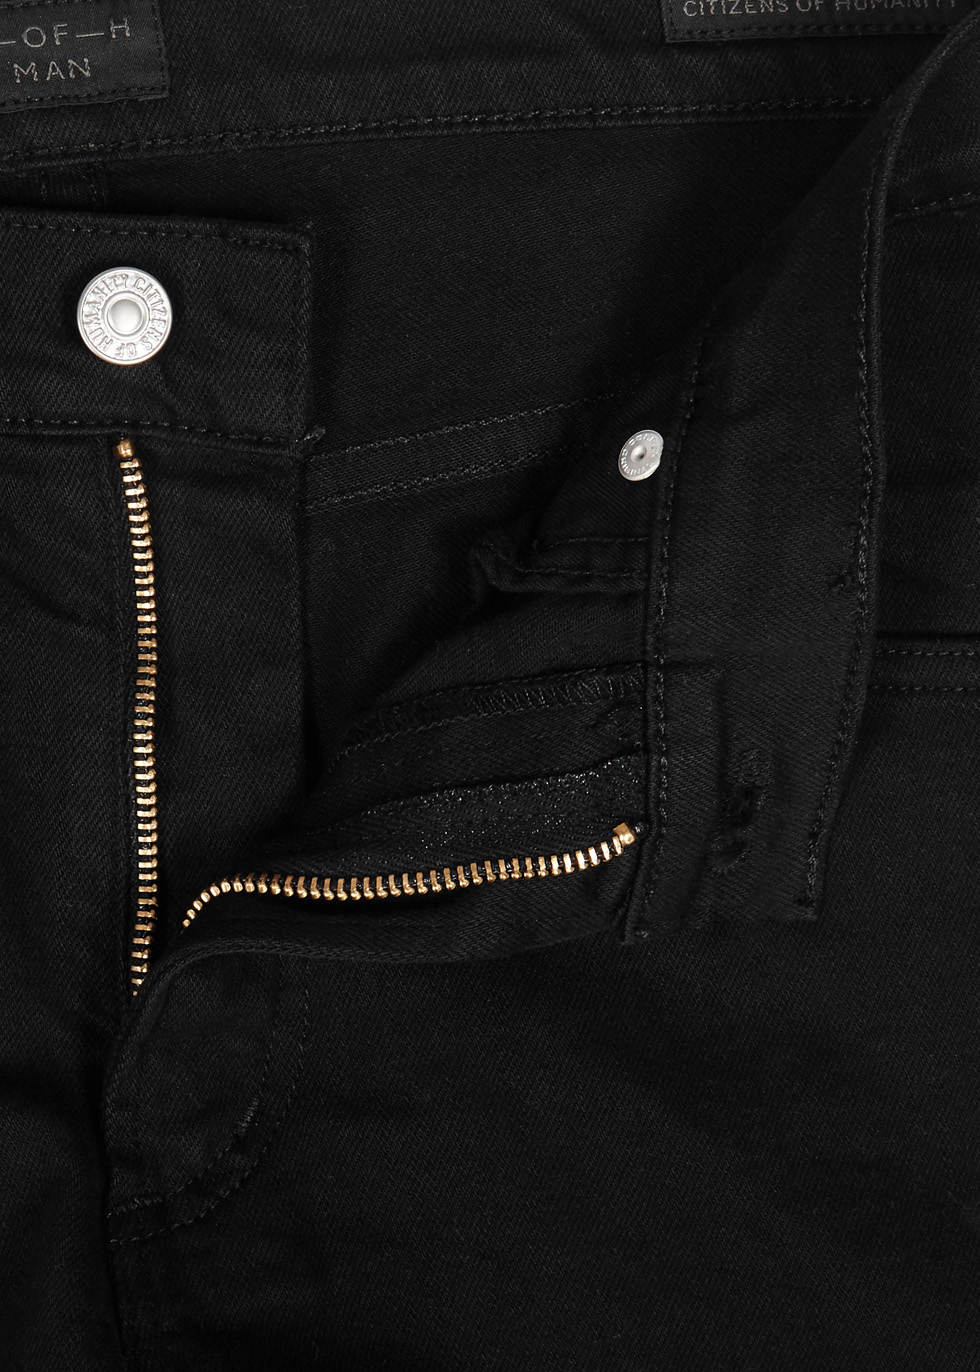 Noah black skinny jeans - Citizens of Humanity